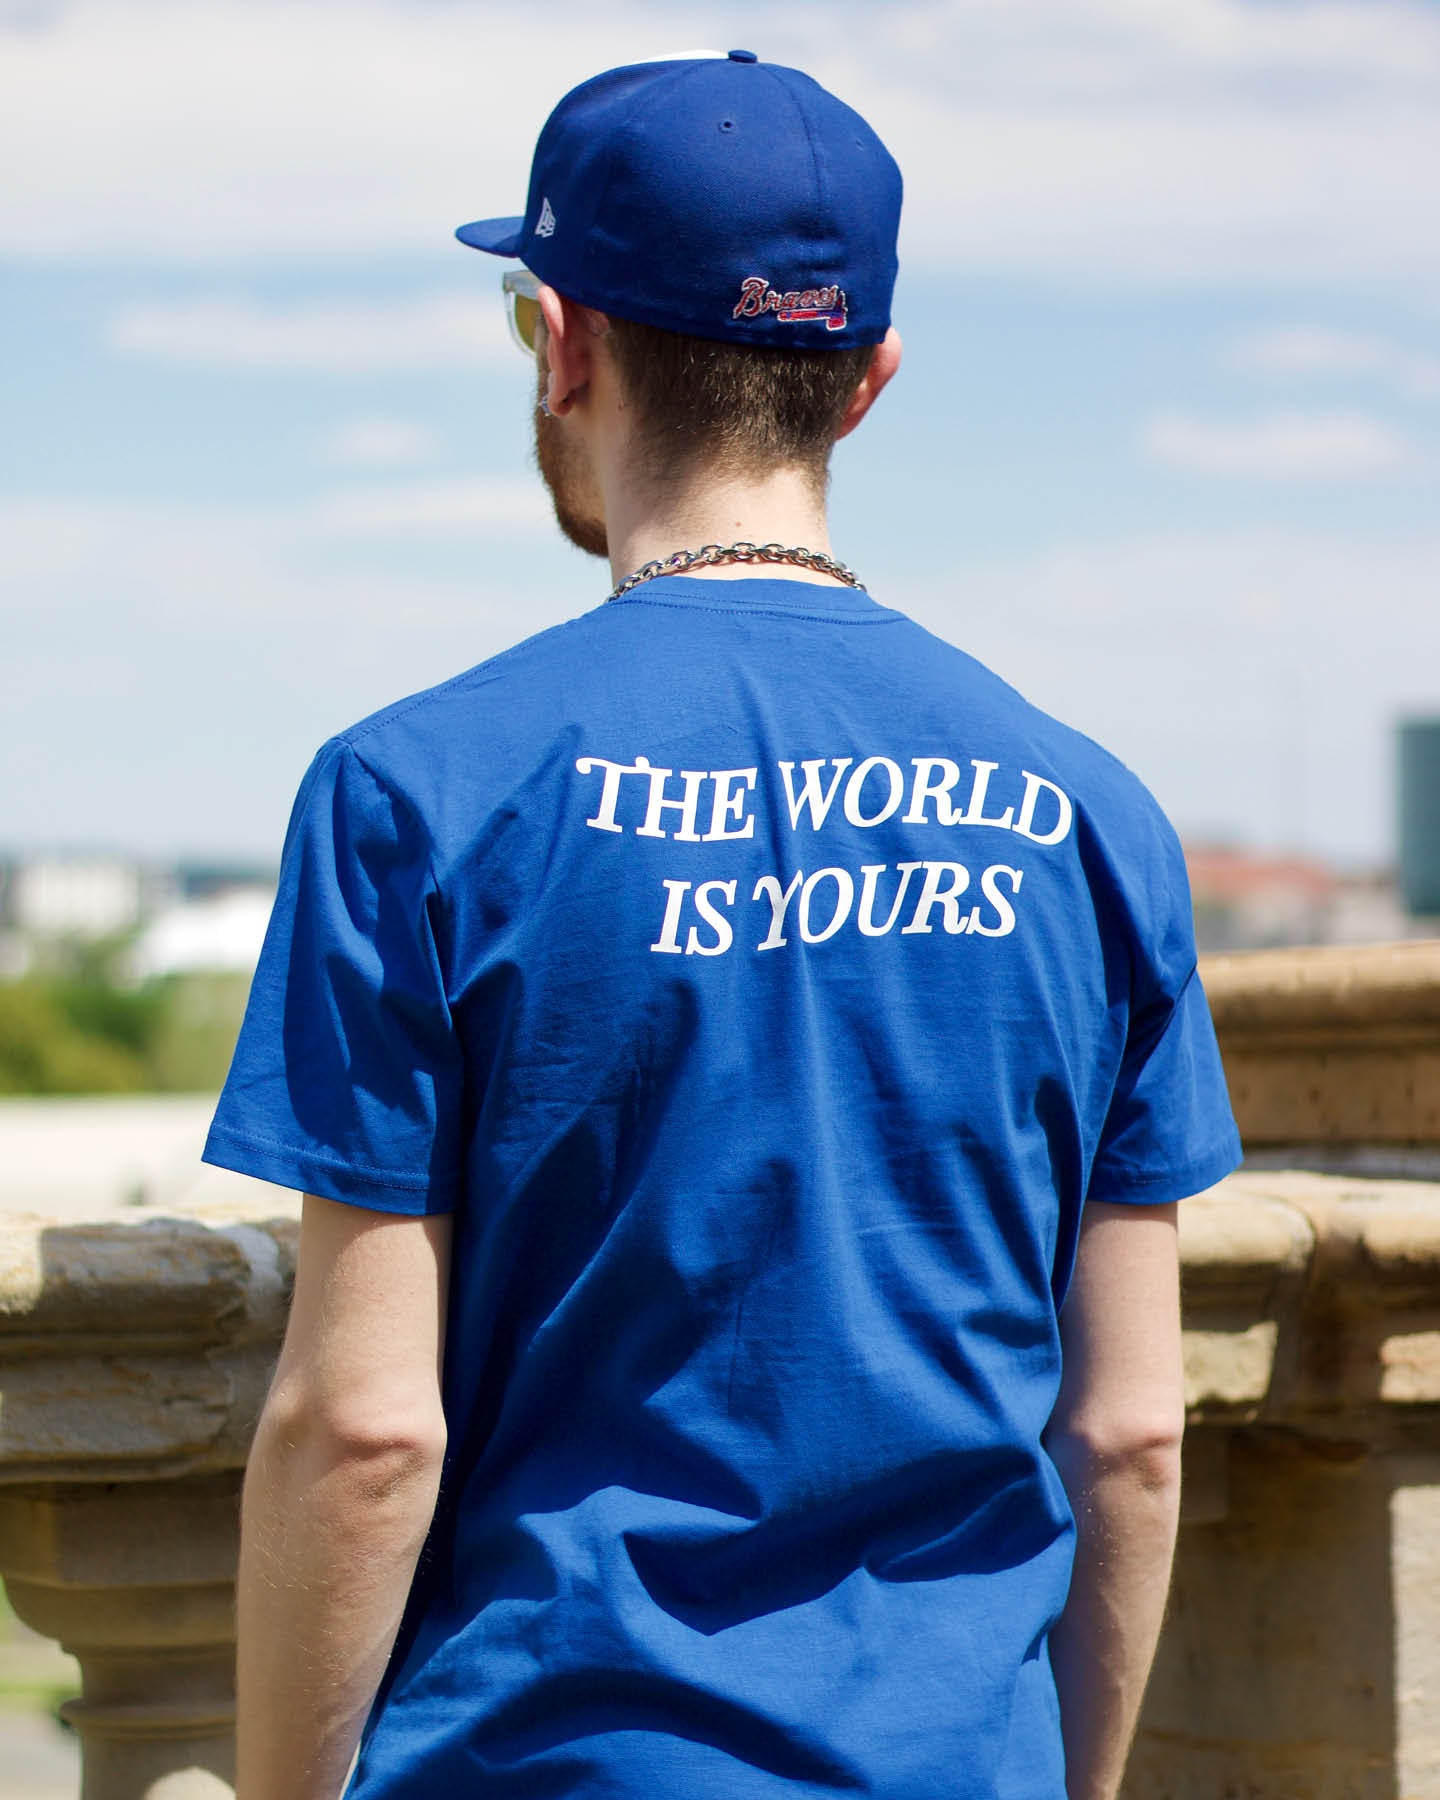 Aaron Seelig wearing The World Is Yours shirt from the Nomad Creative Works Spring 2021 collection at the Dayton Art Institute, Back View.